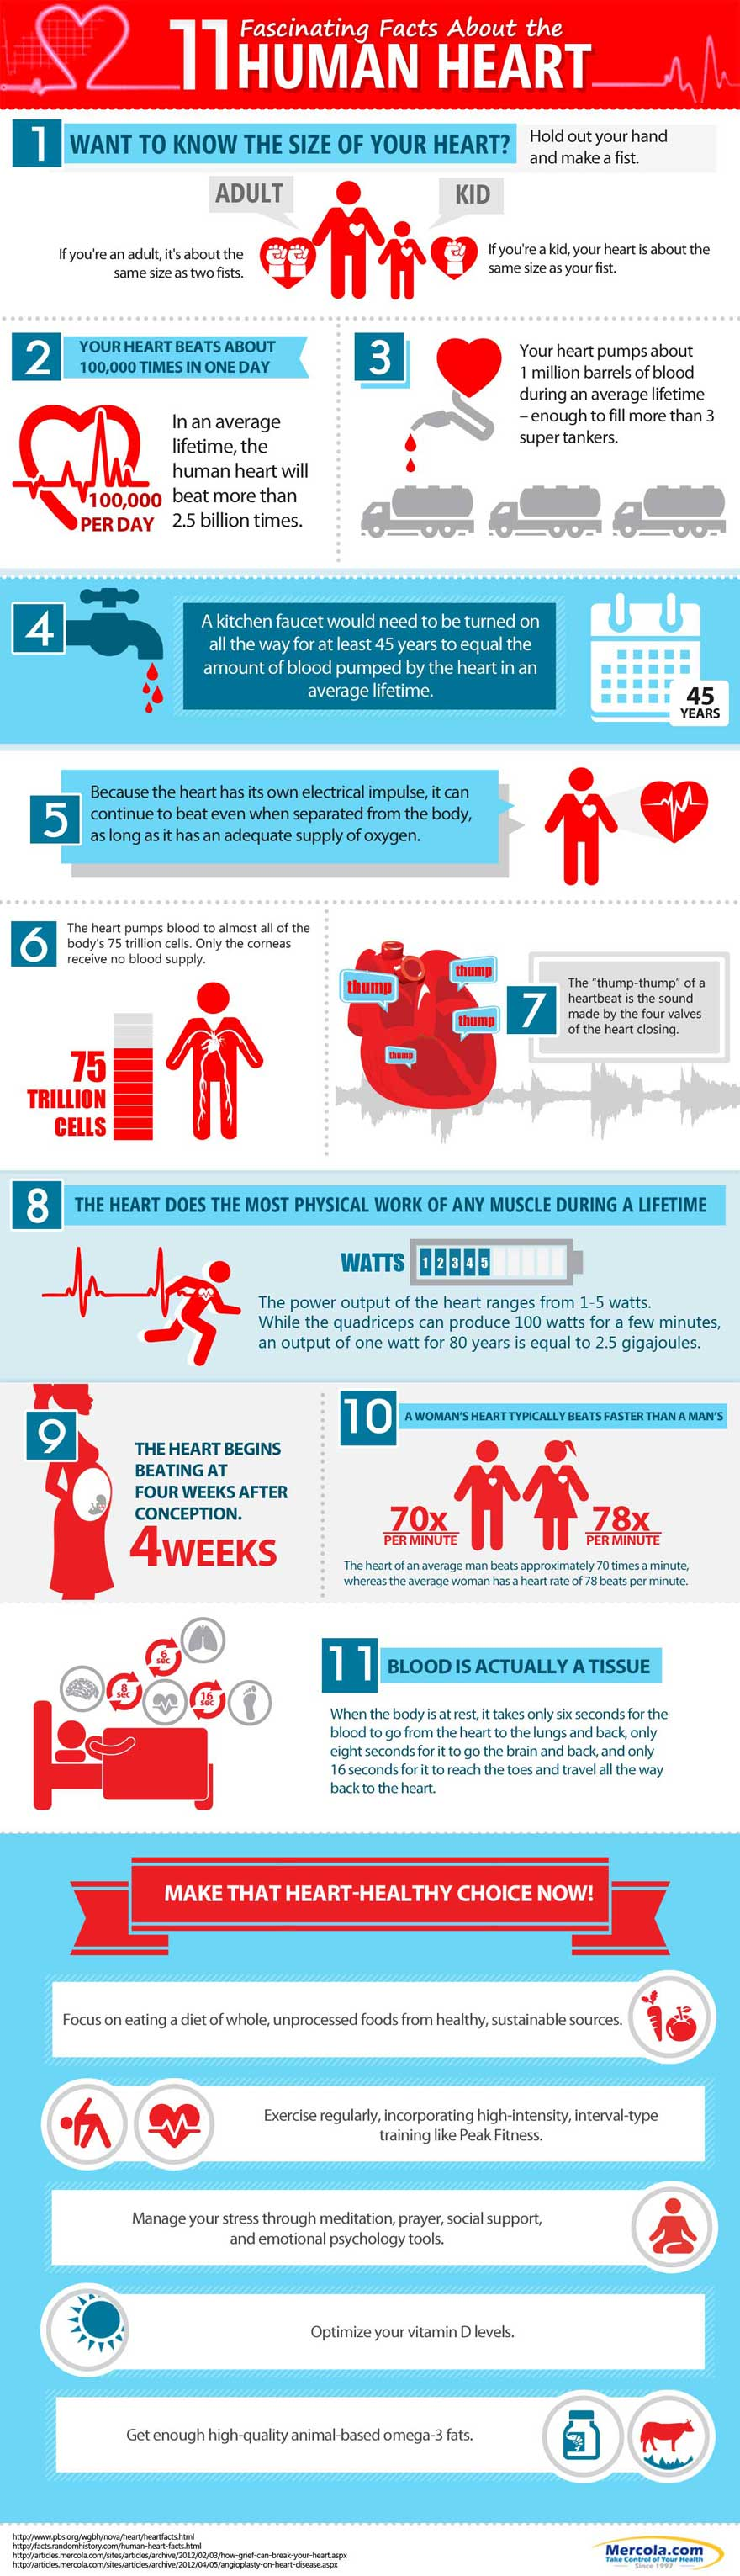 11 Things You Probably Didn't Know About Your Heart